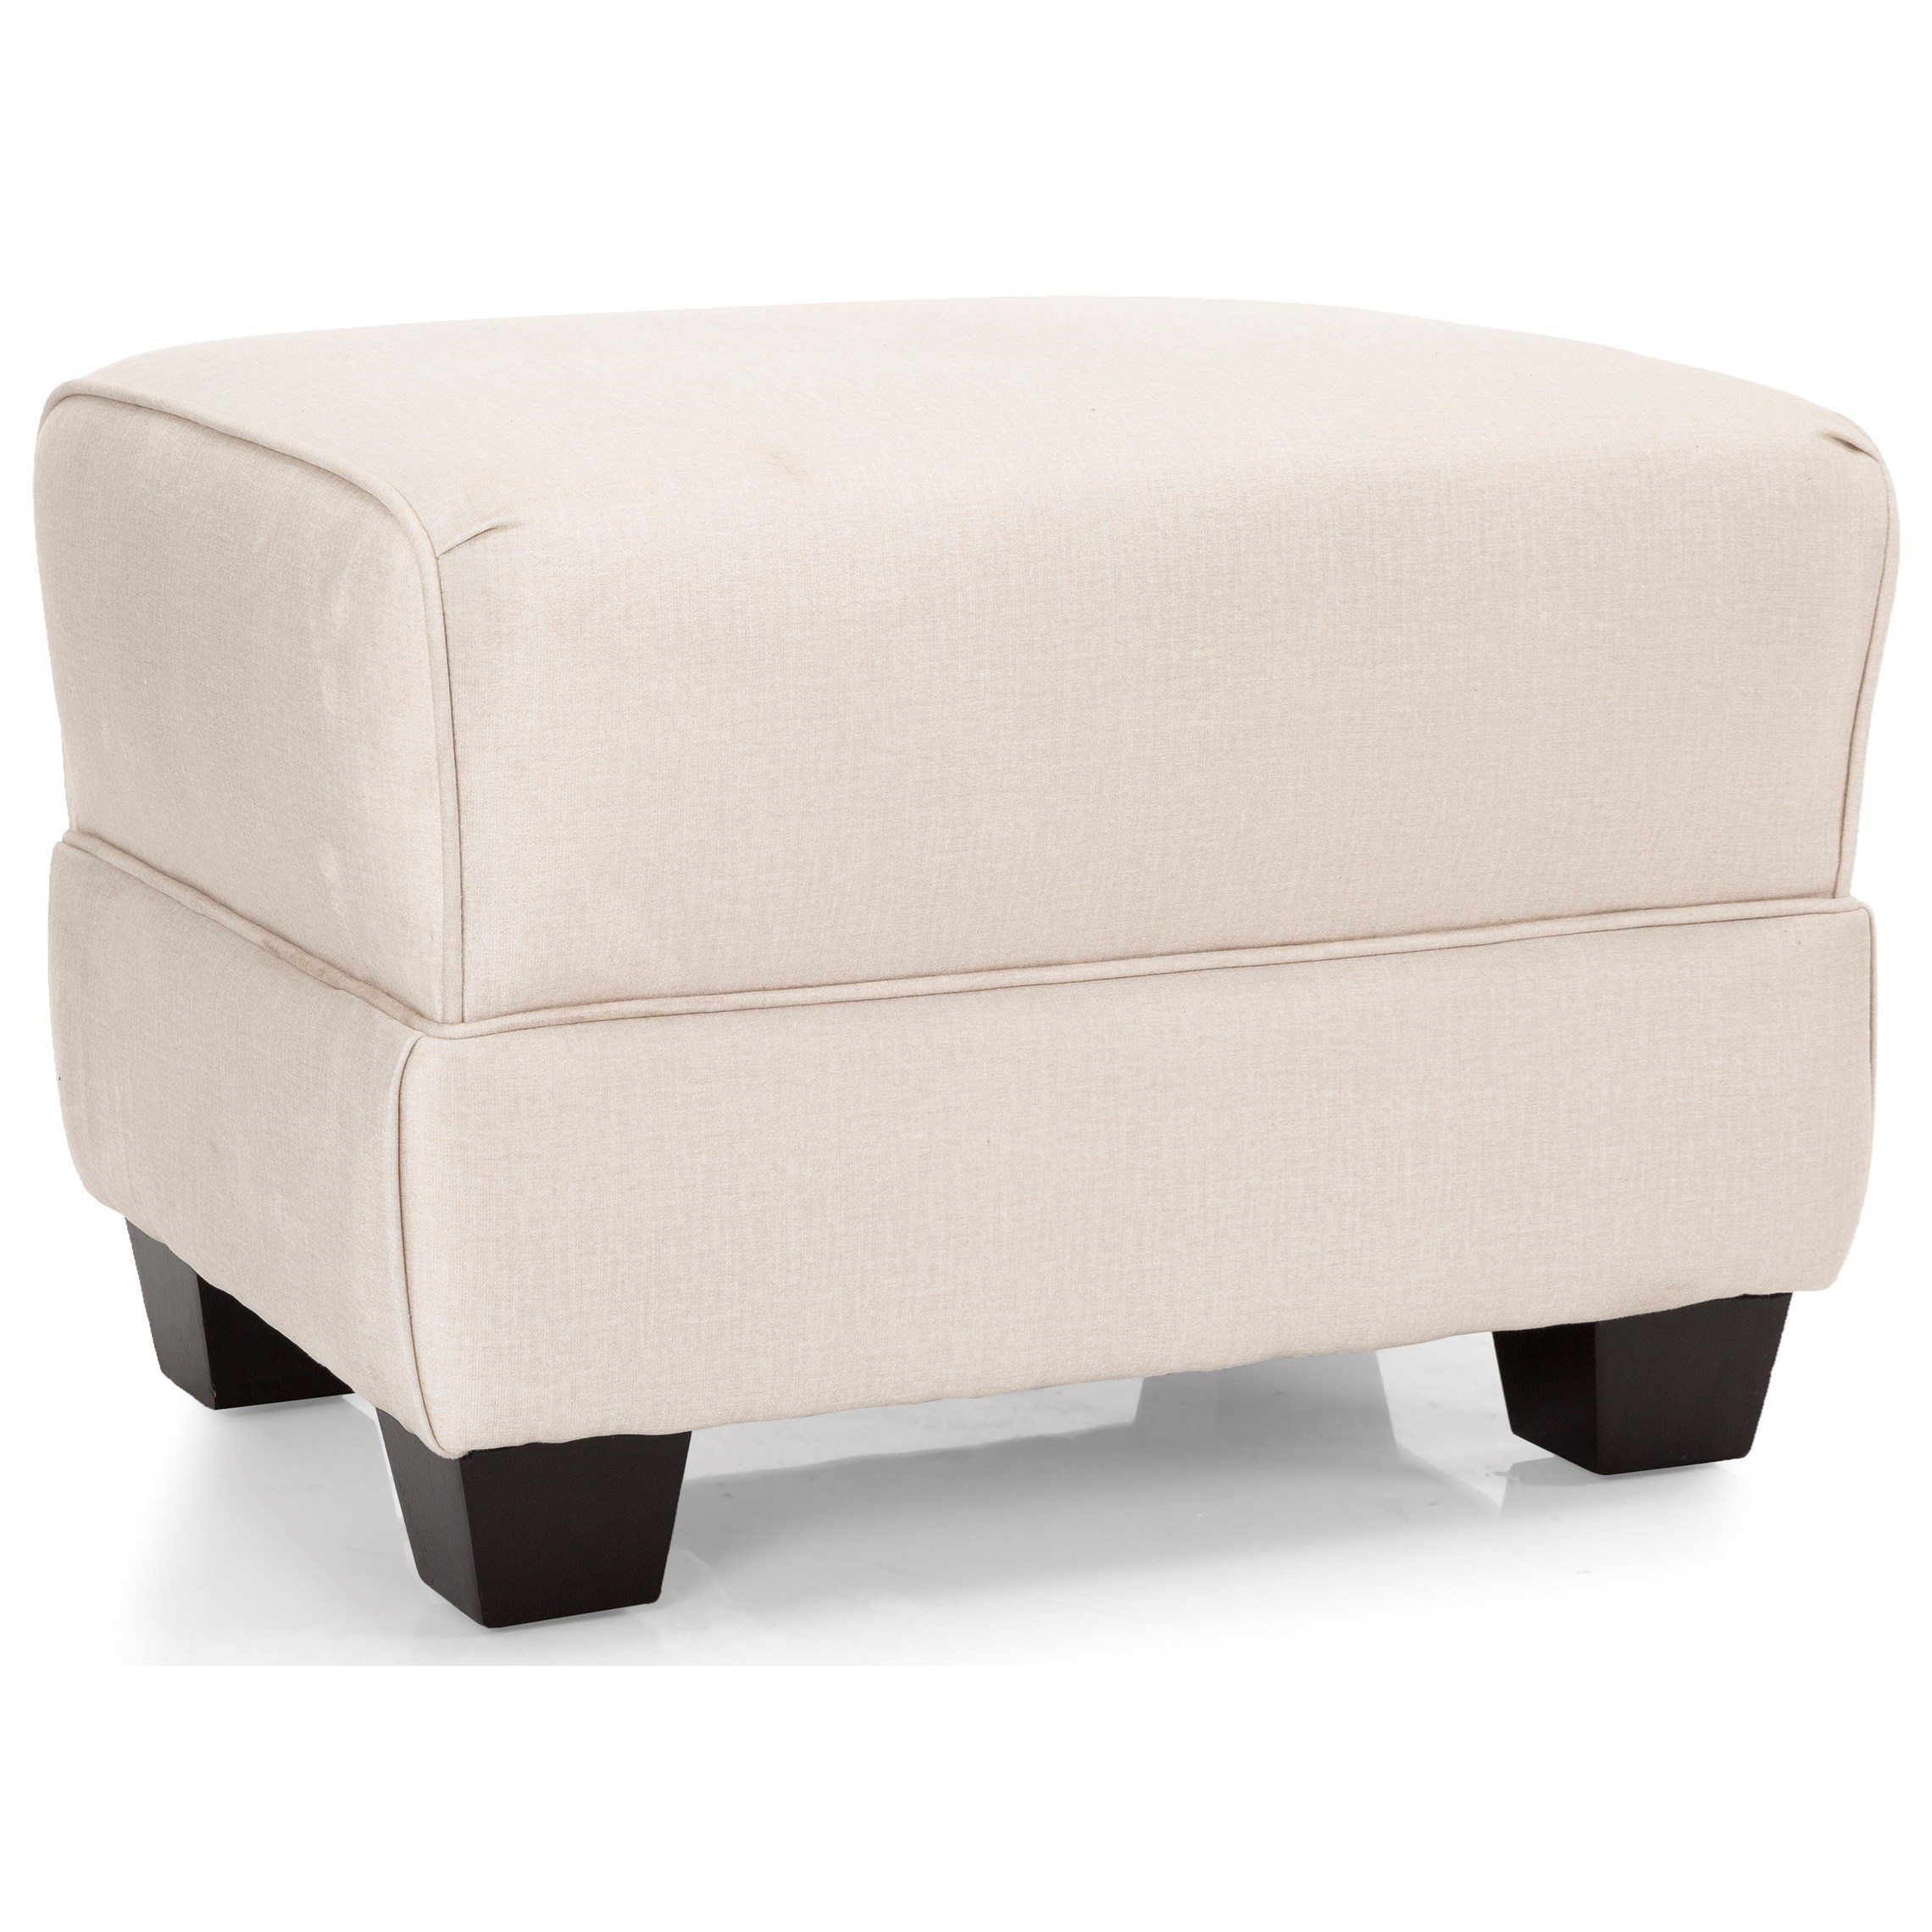 2404 Ottoman  by Decor-Rest at Rooms for Less